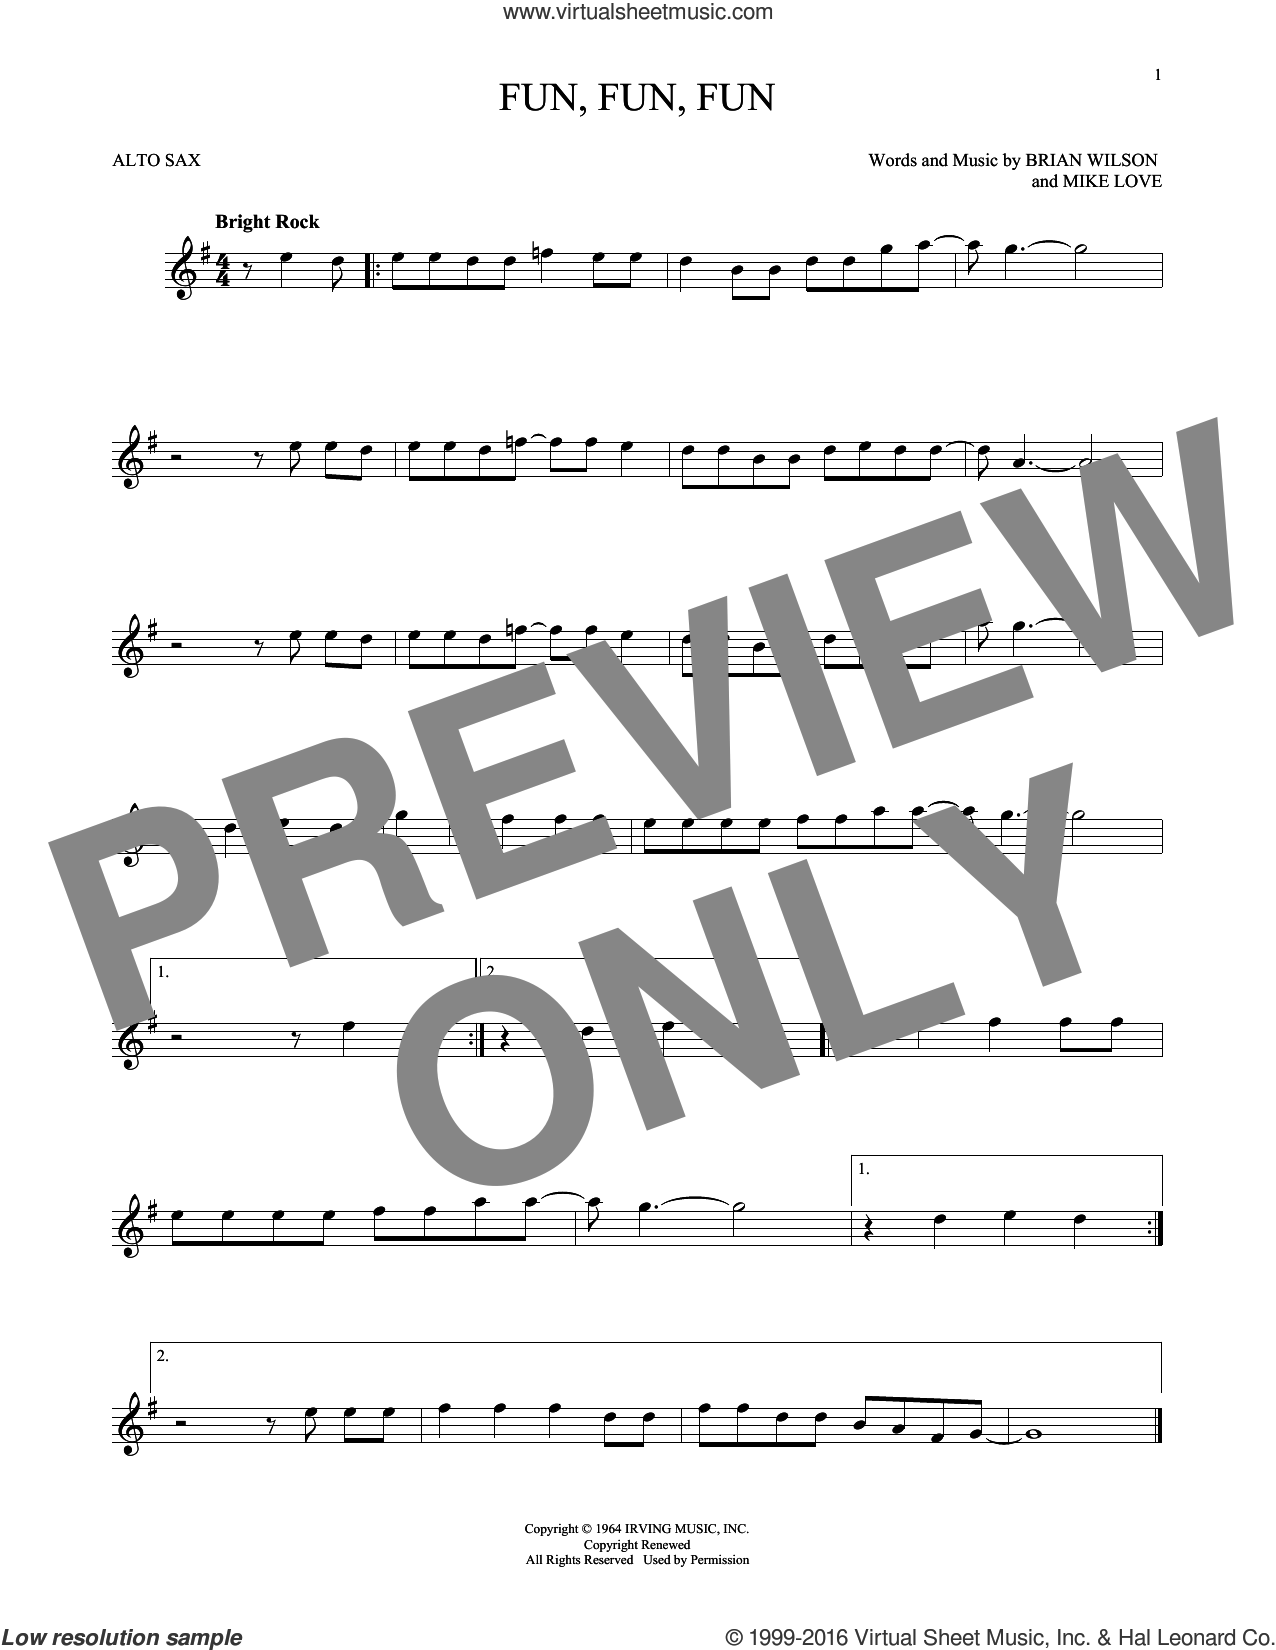 Fun, Fun, Fun sheet music for alto saxophone solo by The Beach Boys, Brian Wilson and Mike Love, intermediate skill level